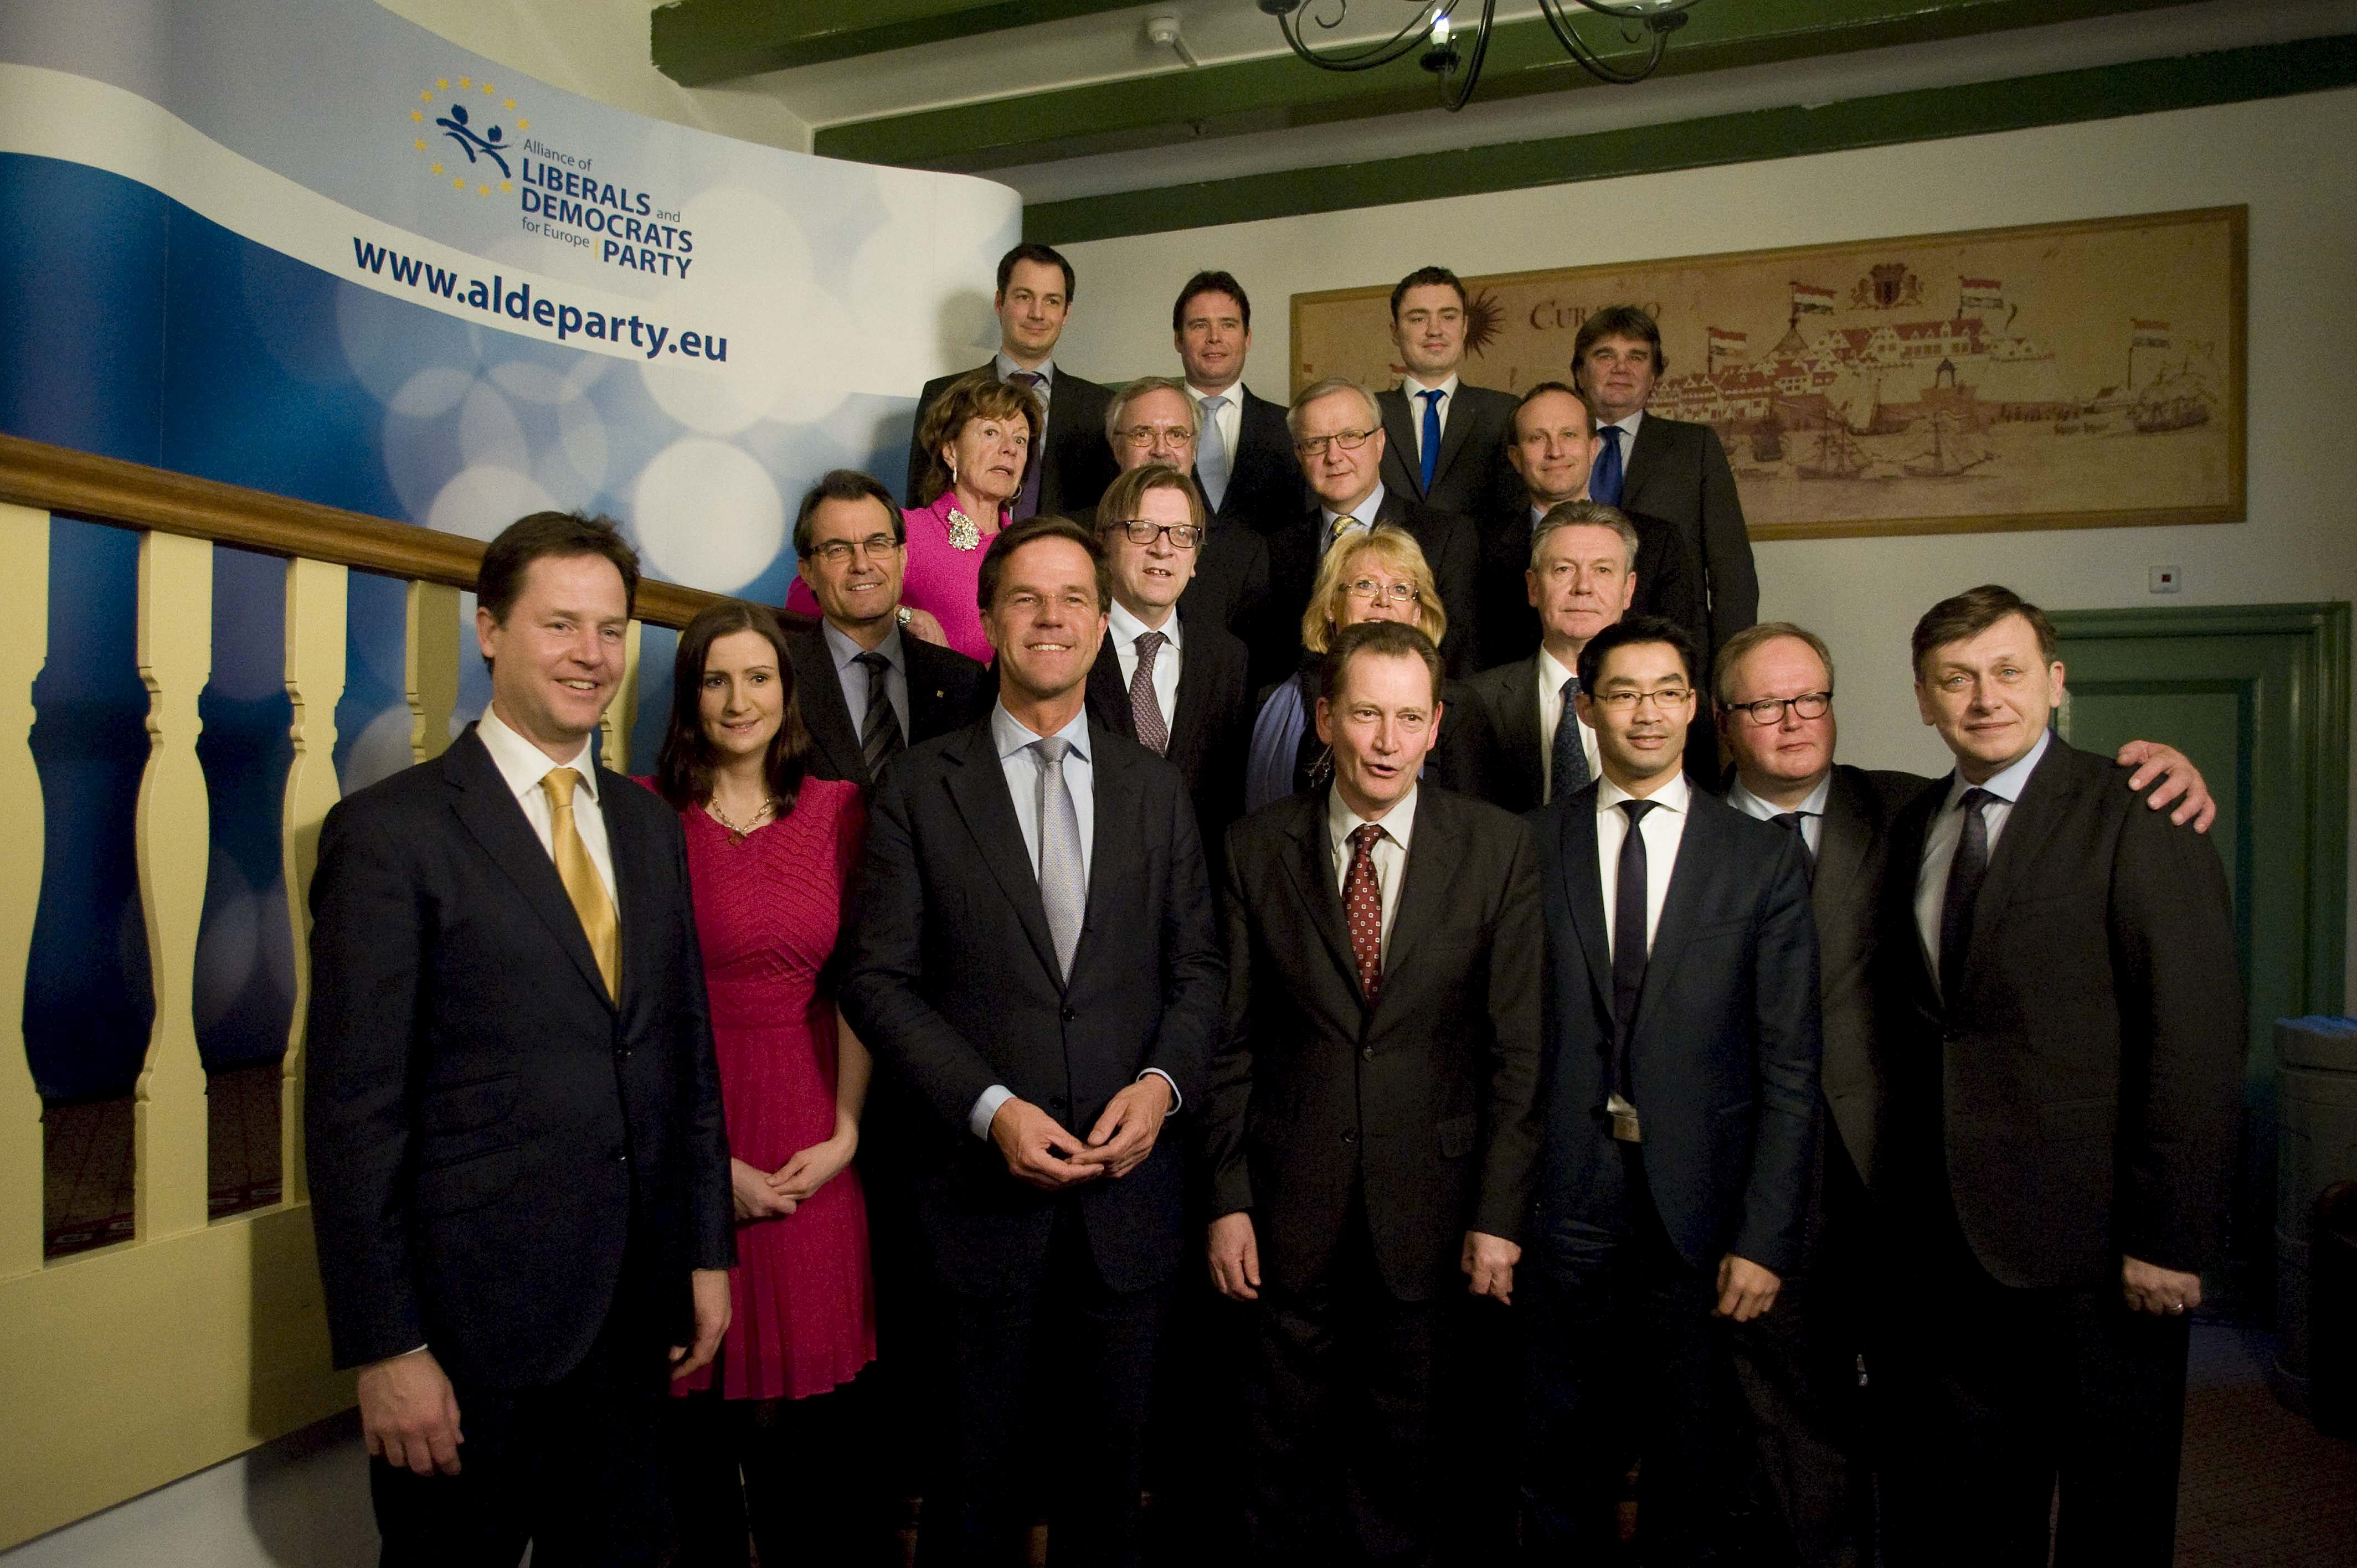 Meeting of European Liberal Democrats in Amsterdam last February